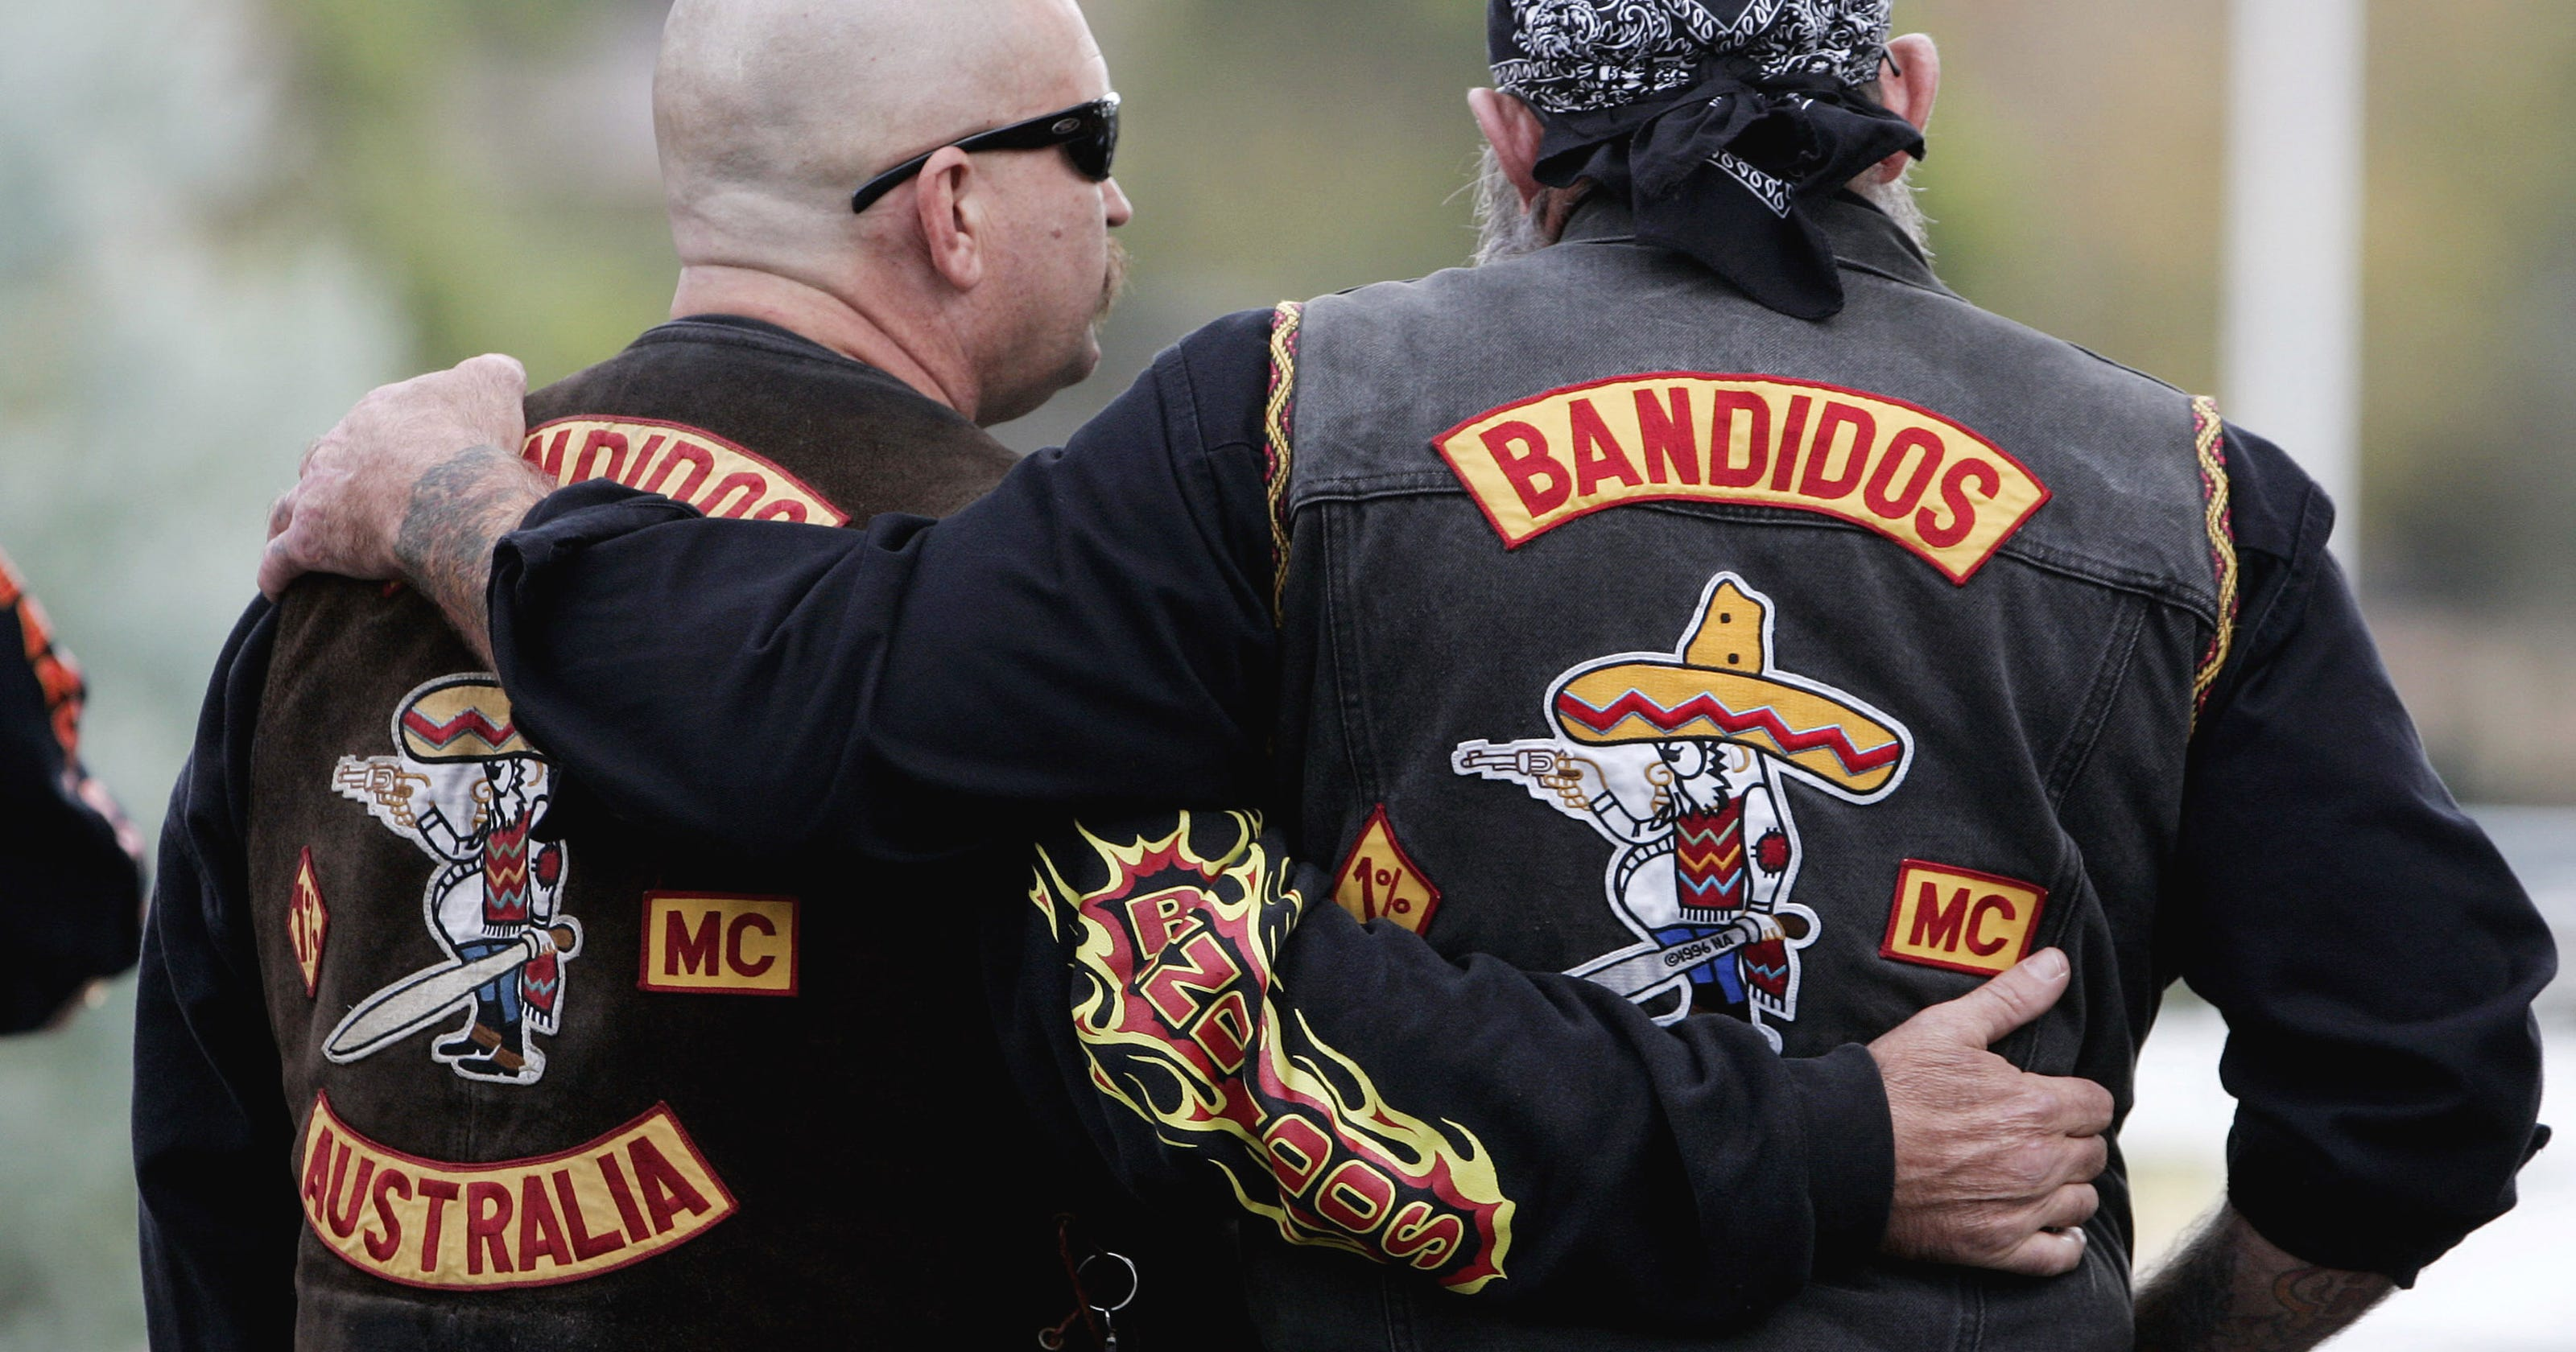 Bandidos: 5 things to know about second-most dangerous